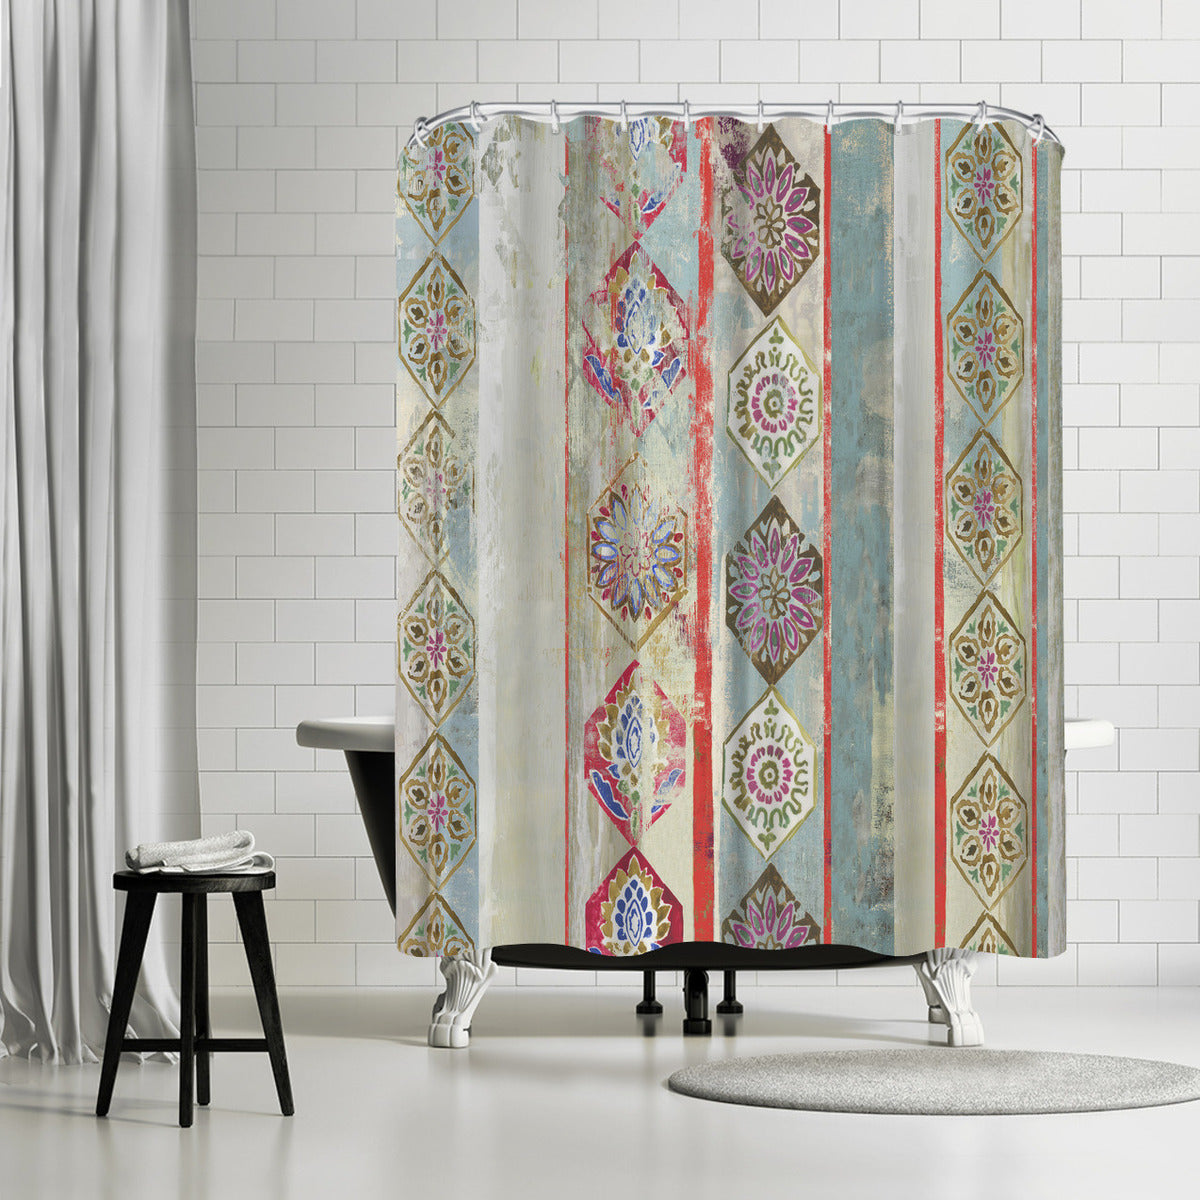 Painted Wood Ii by PI Creative Art Shower Curtain - Shower Curtain - Americanflat